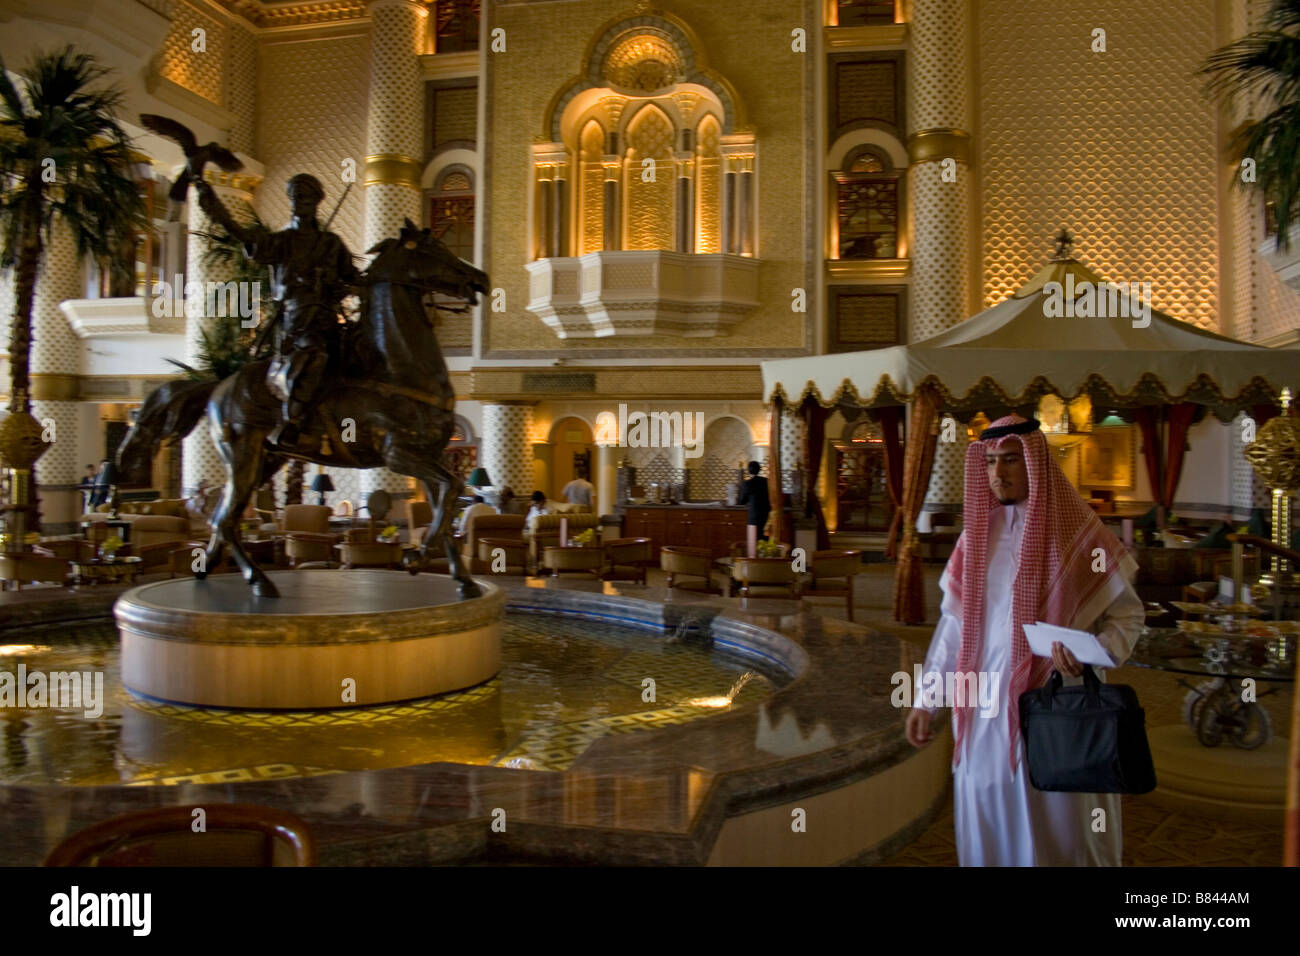 People in the Hyatt hotel in the Bay of Oman close to Muscat the capital of the Sultanate of Oman - Stock Image